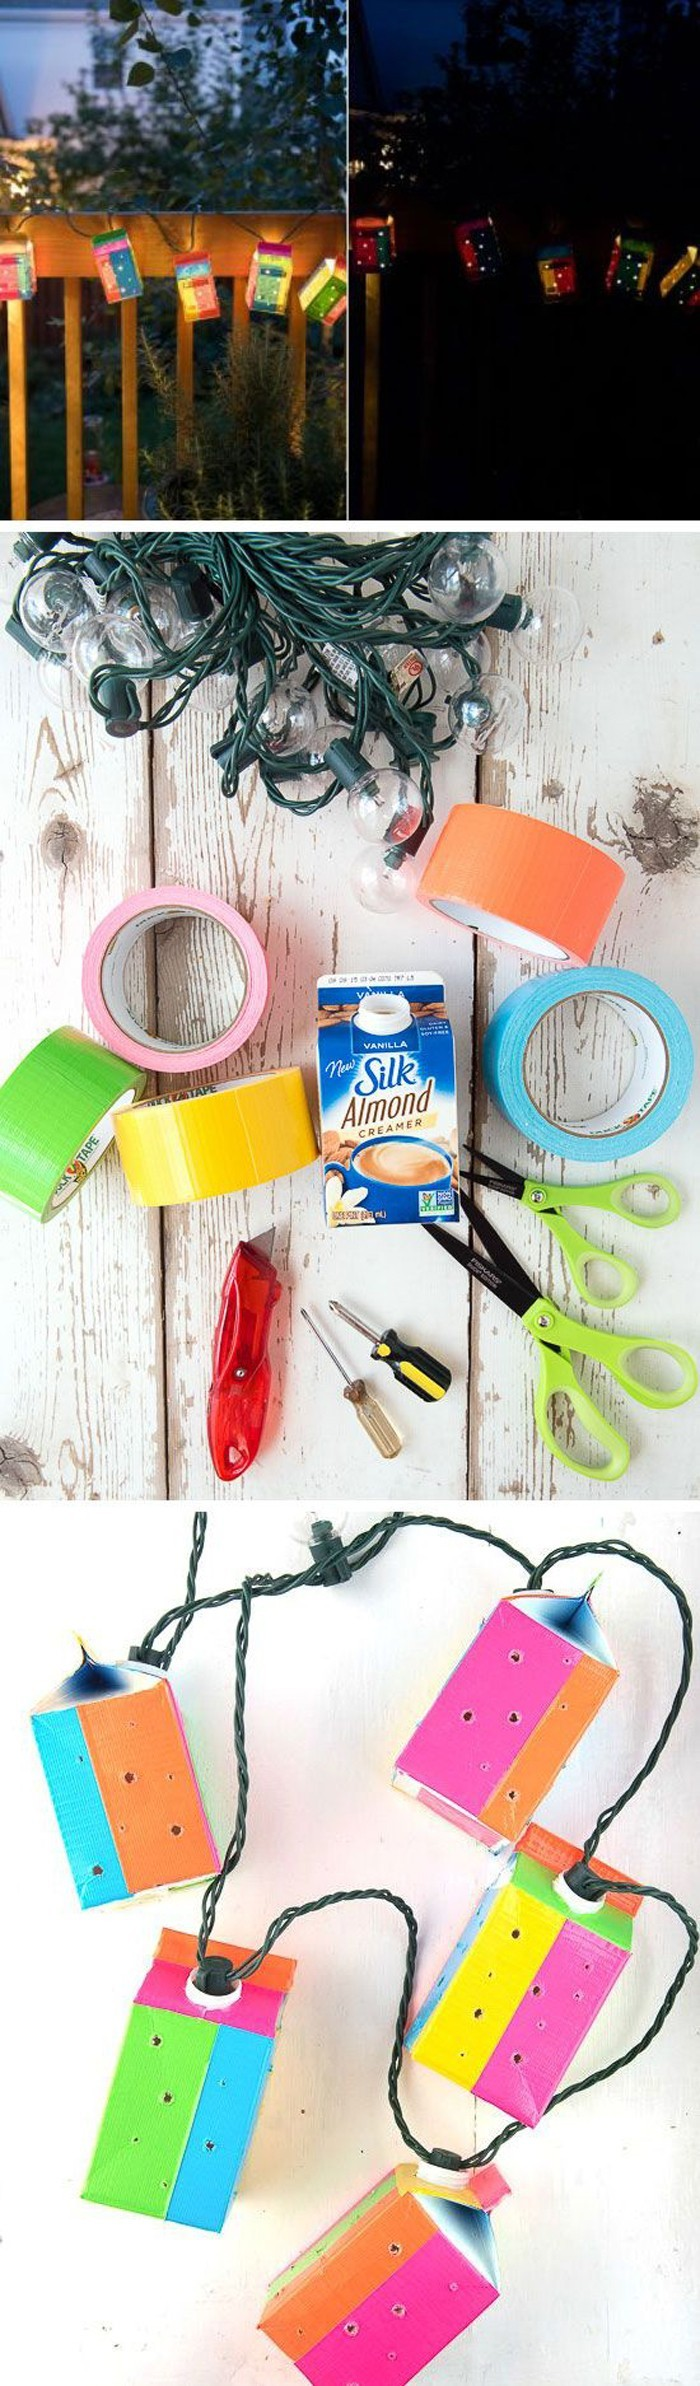 upcycling ideen recycling basteln tetrapack laternen diy